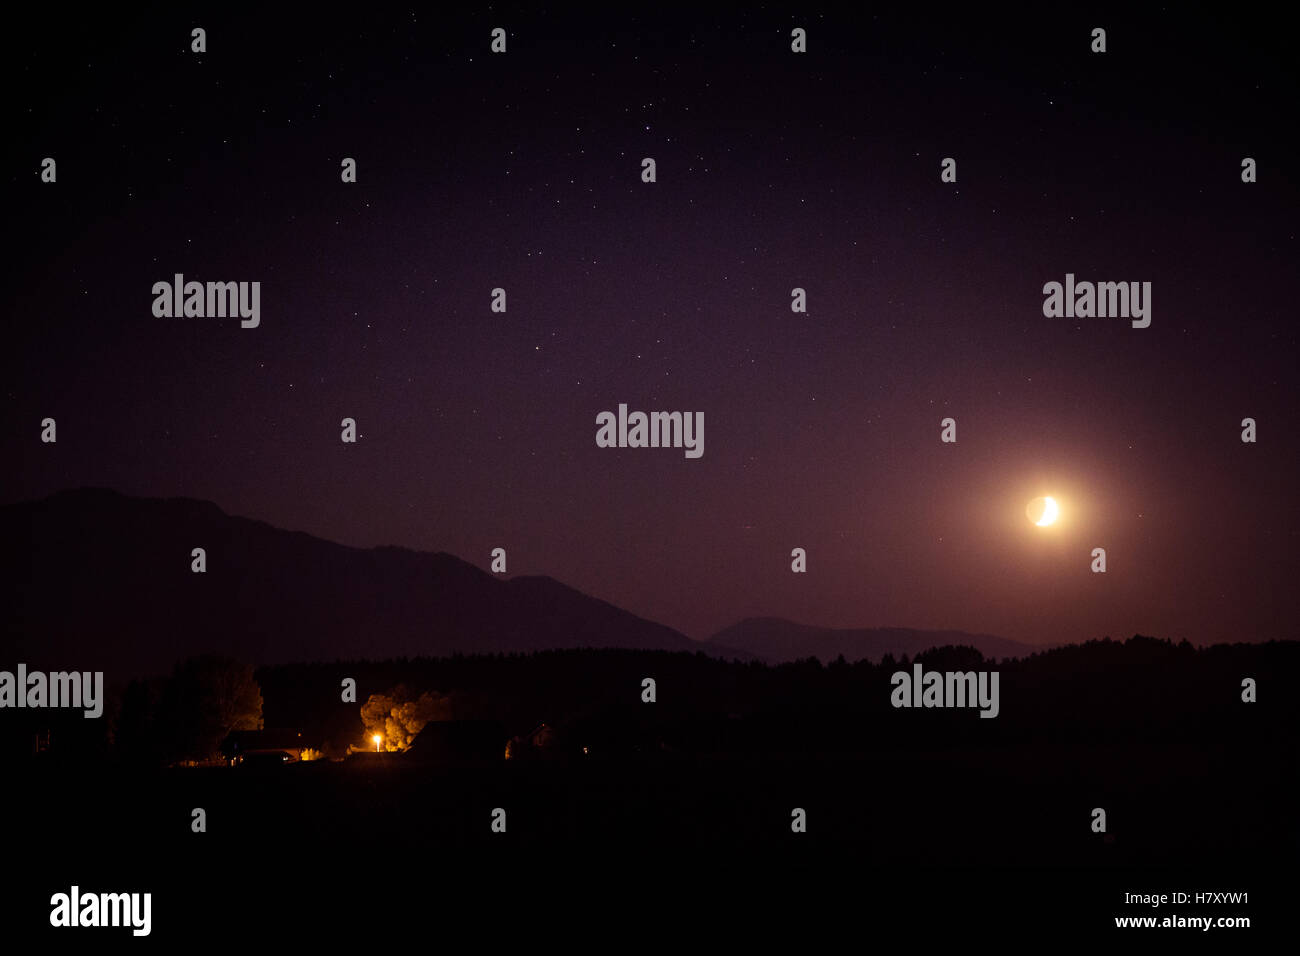 A beautiful moon above the mountains - Stock Image